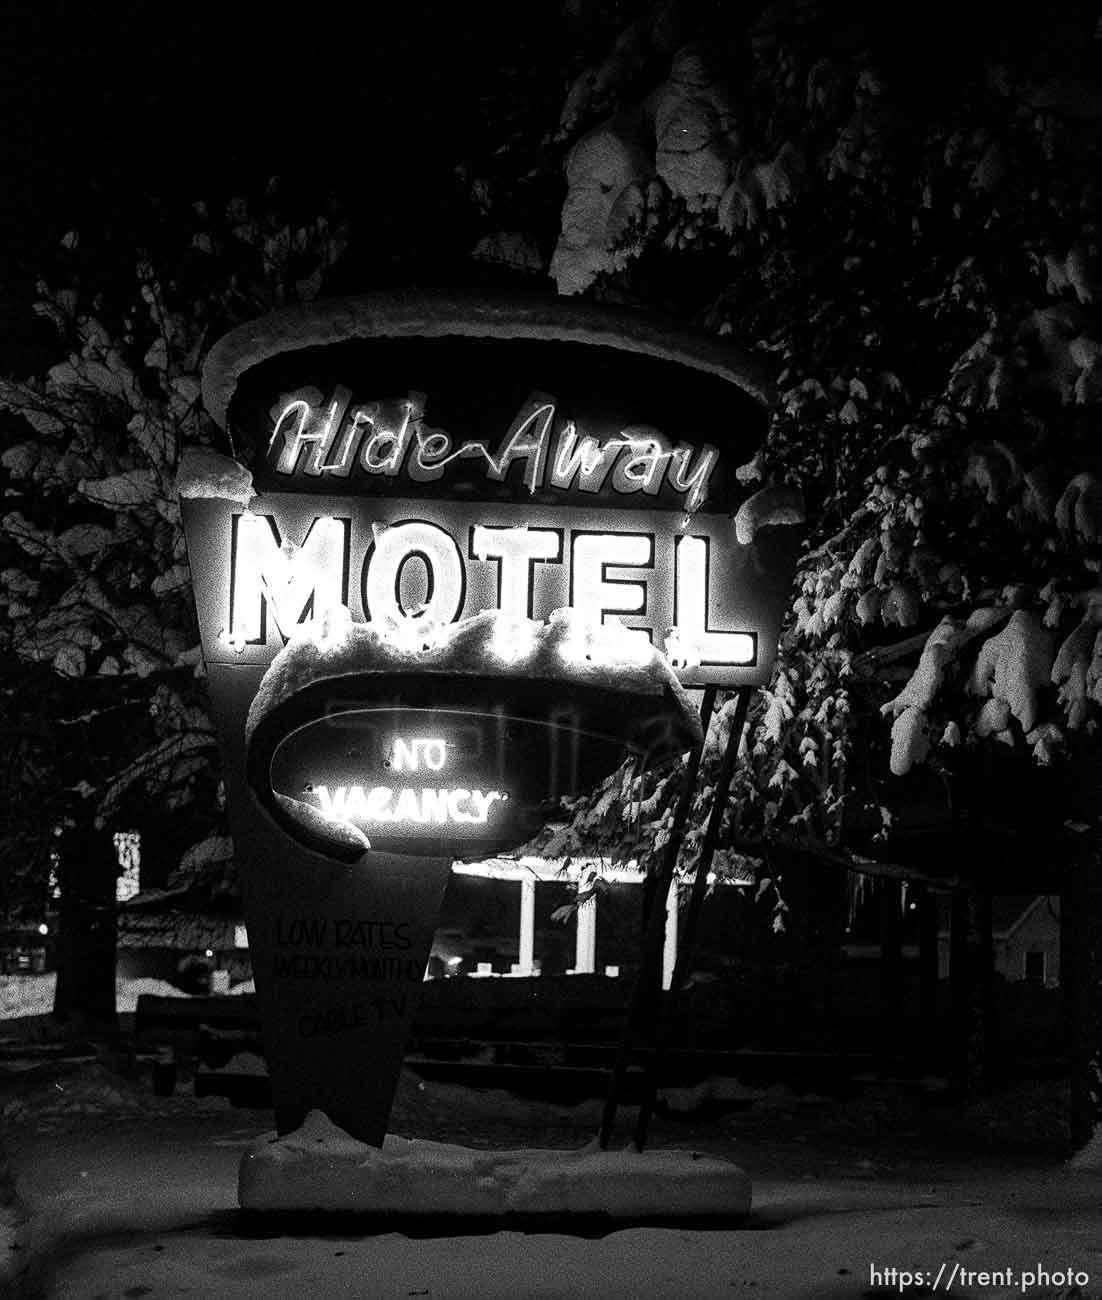 The neon sign in front of the Hideaway Motel.